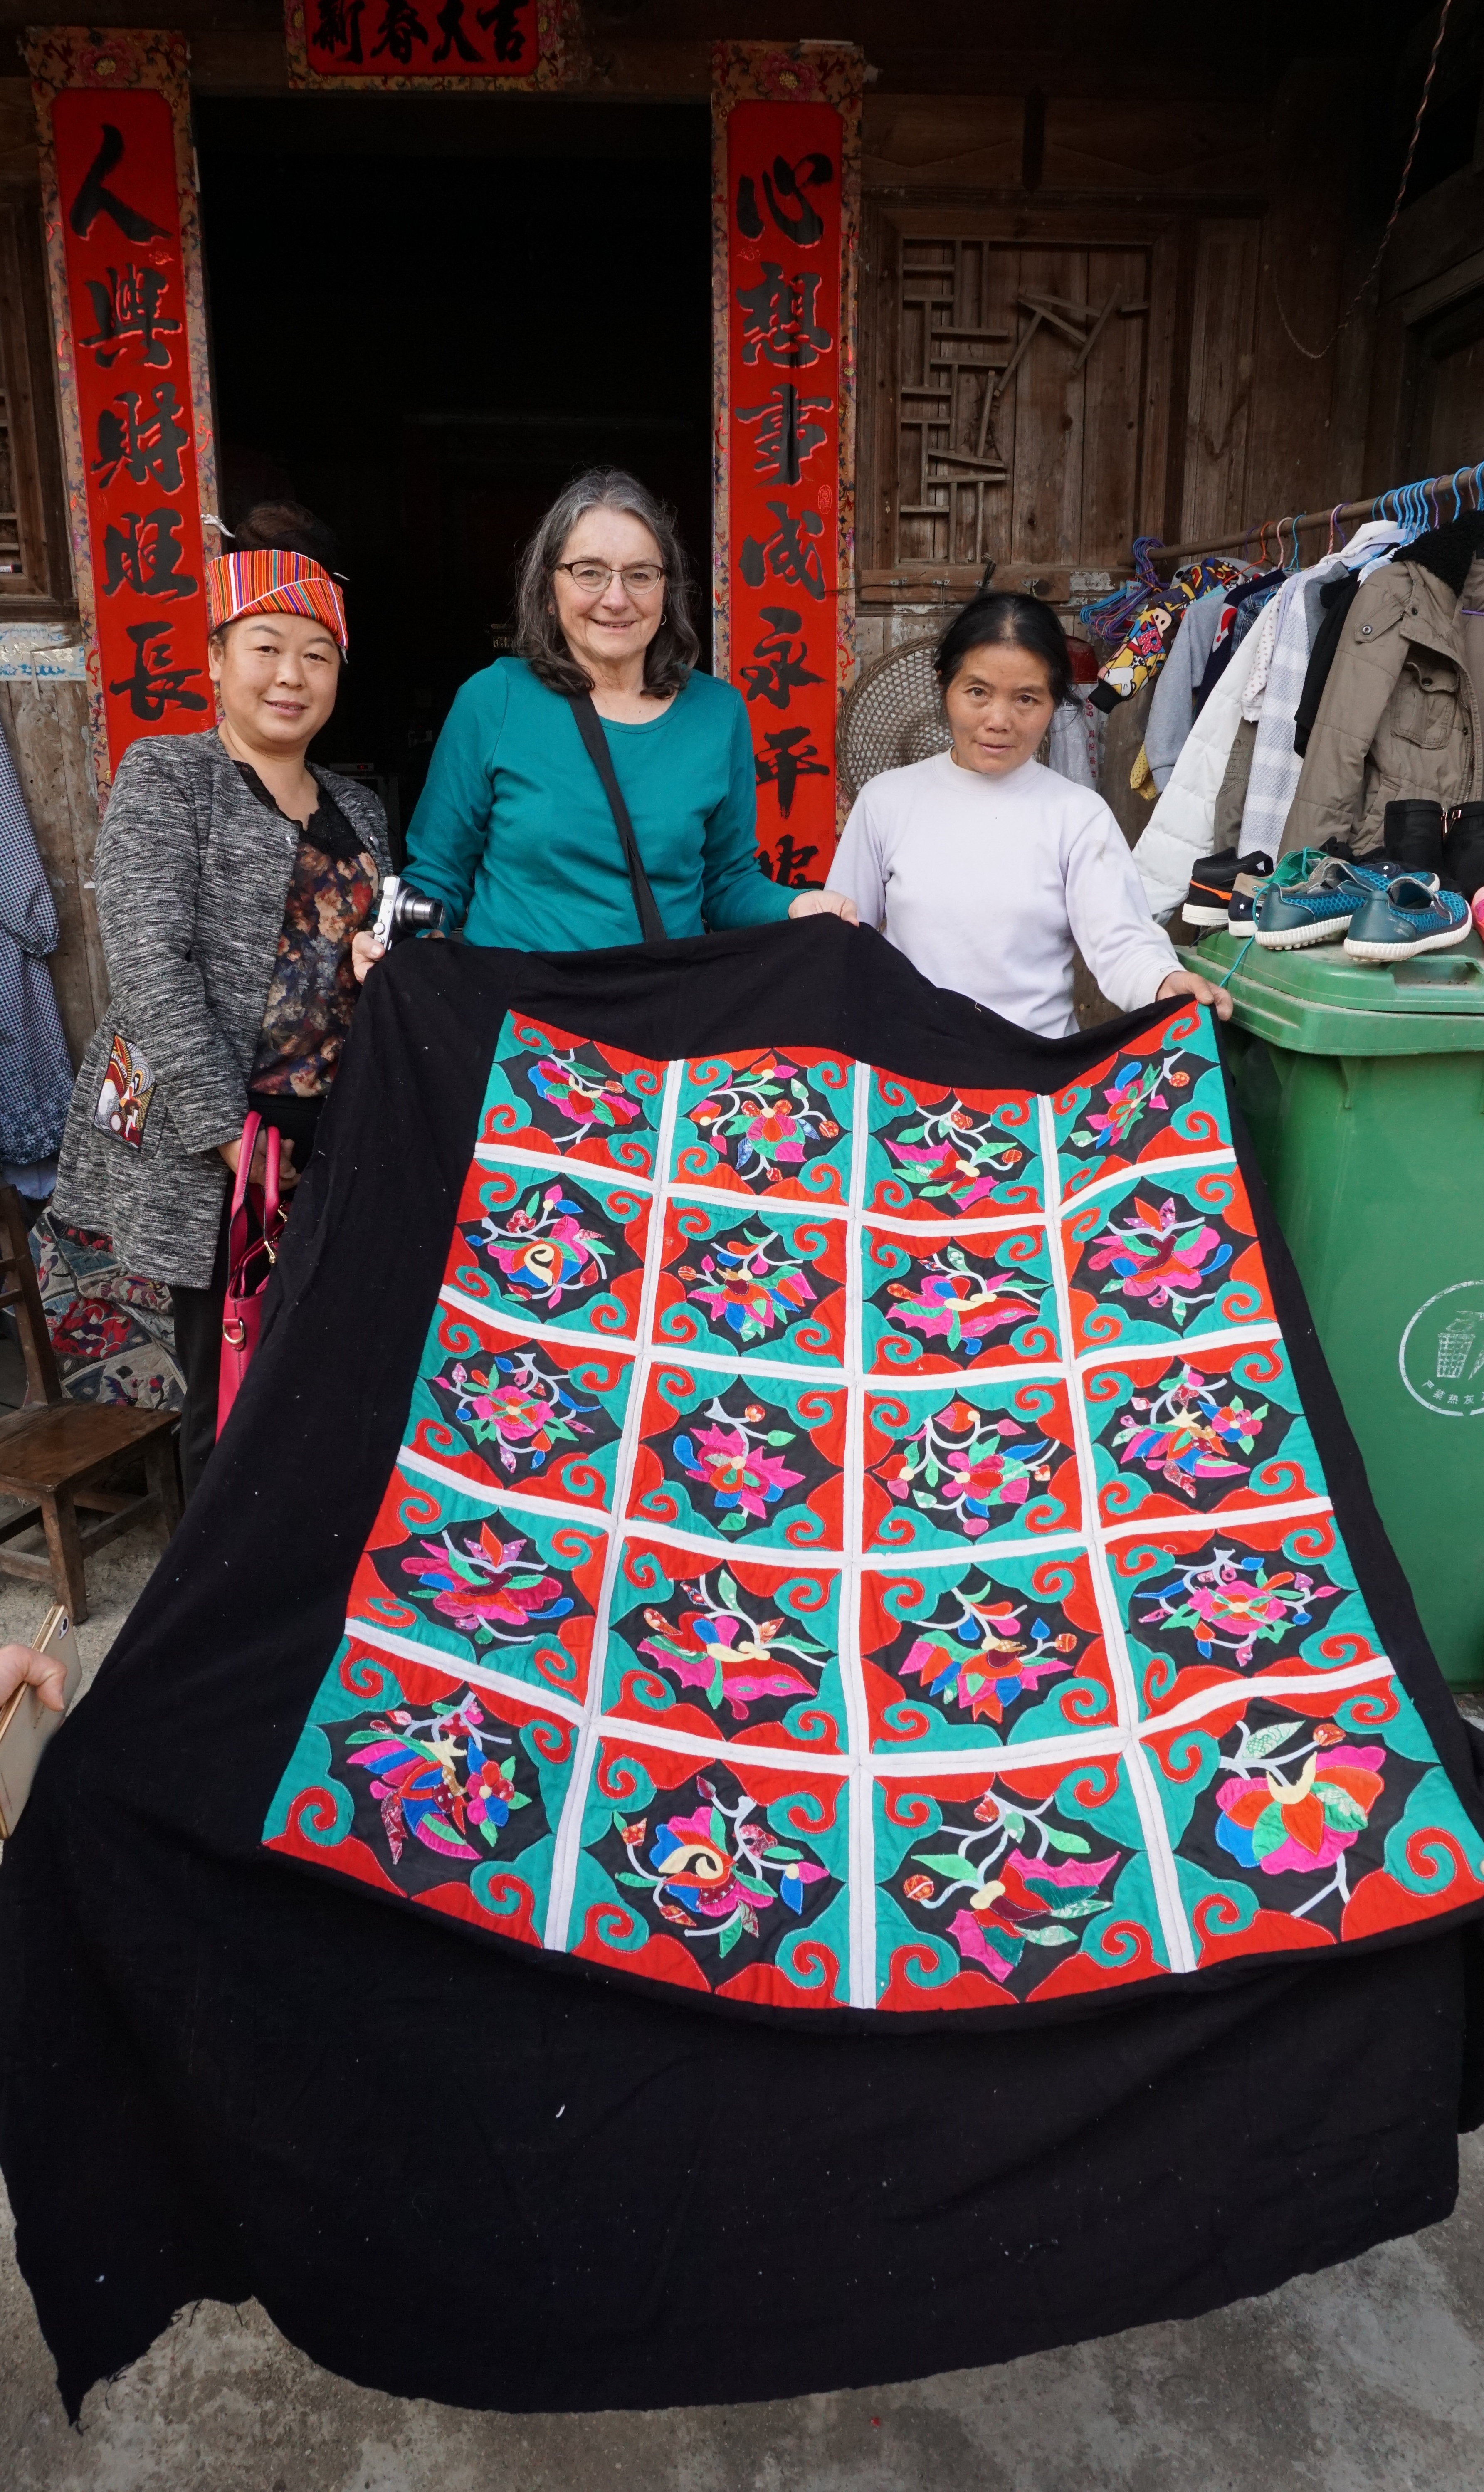 7-quilts-of-southwest-china-stephen-chambers-dallas-architect-oklahoma-residential